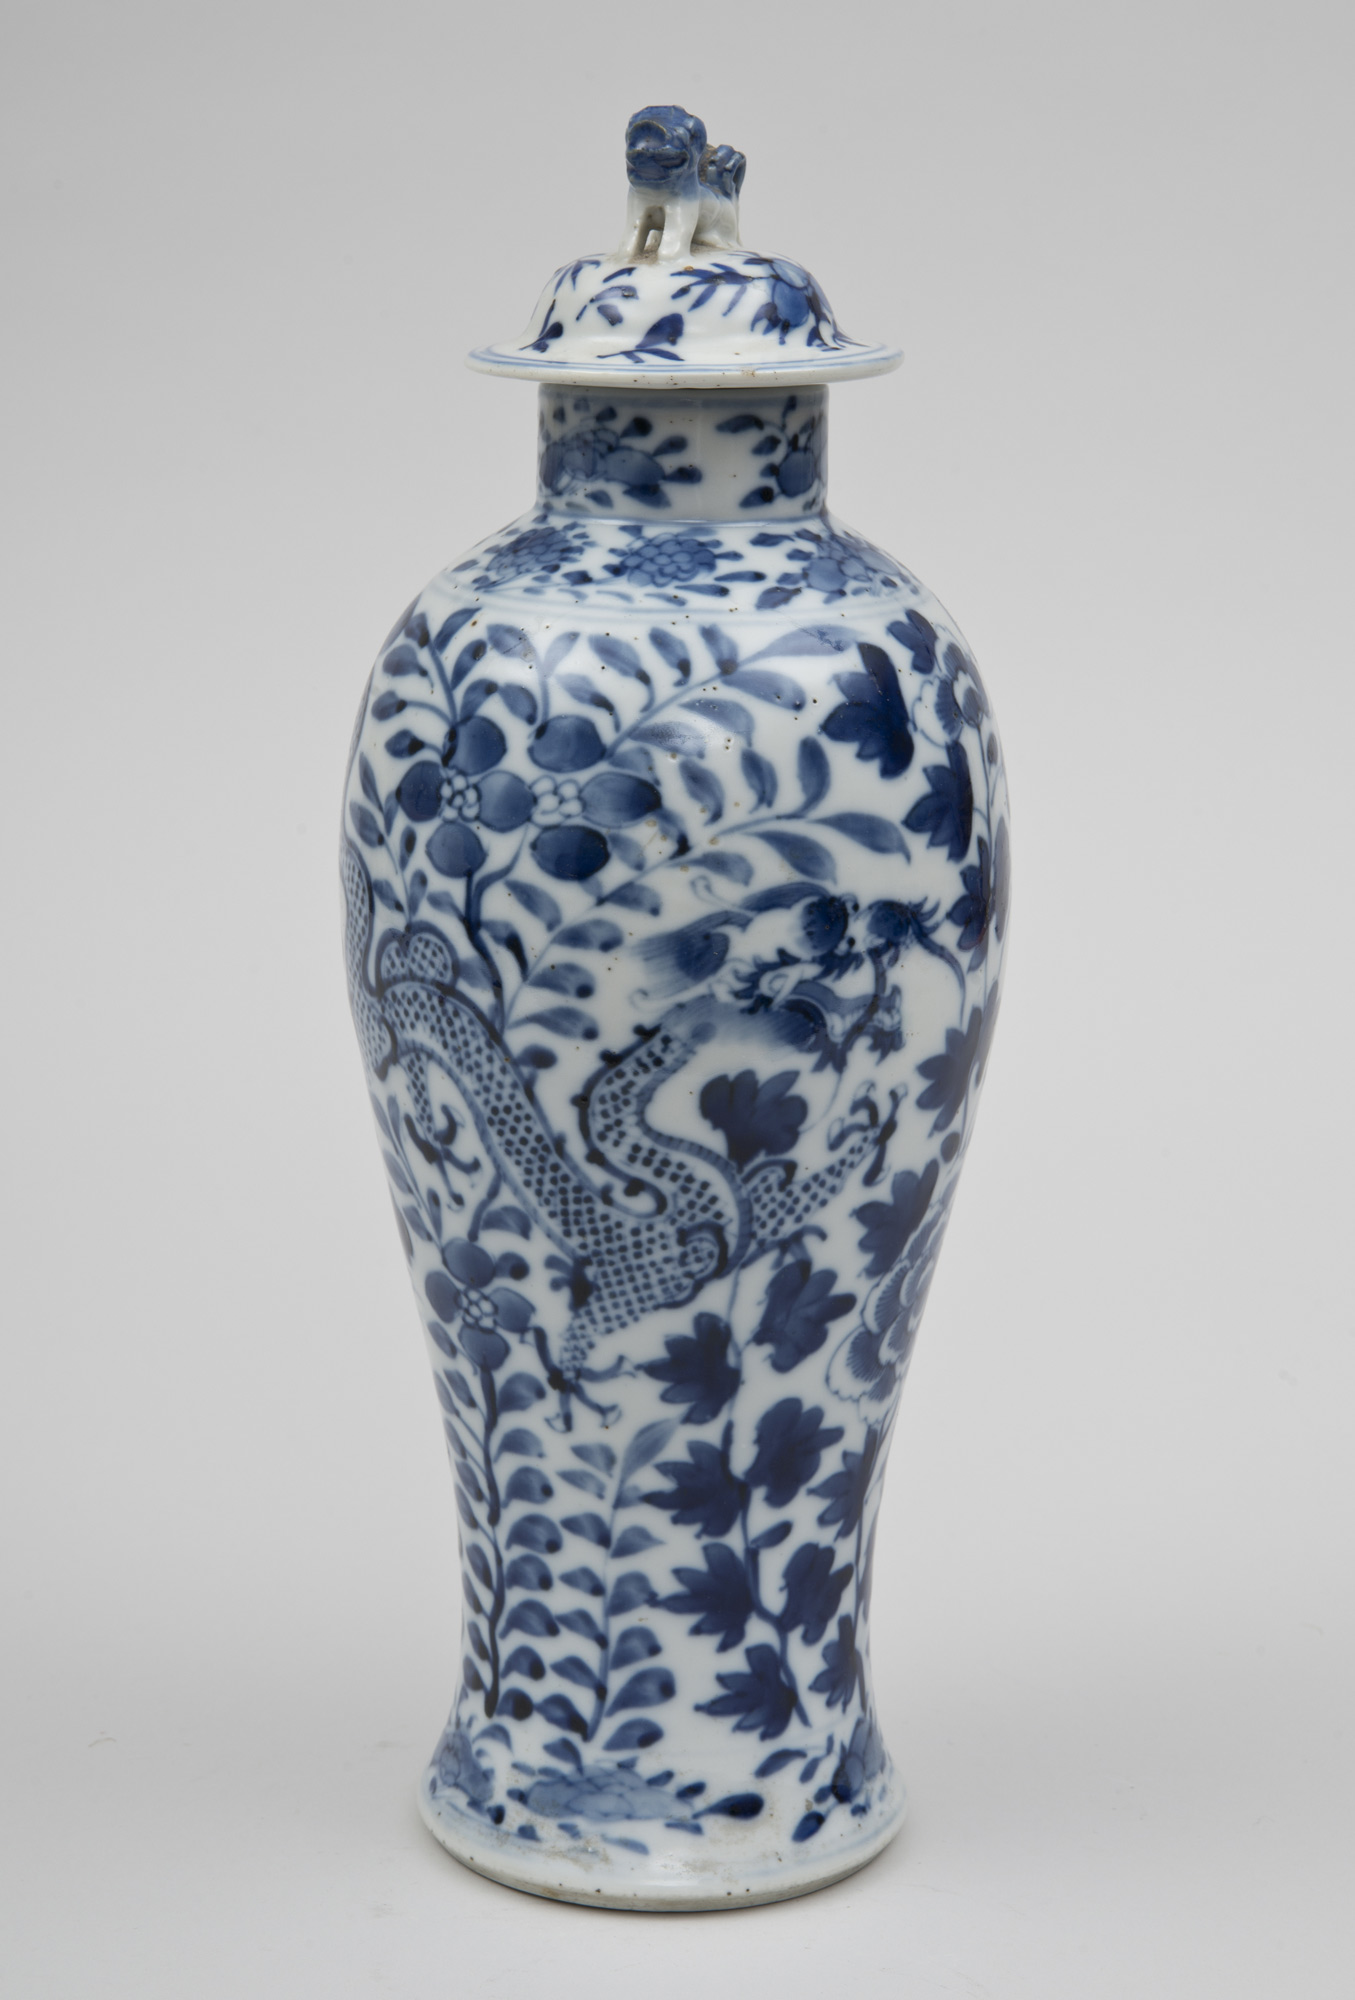 Product Chinese Baluster Vase Lid